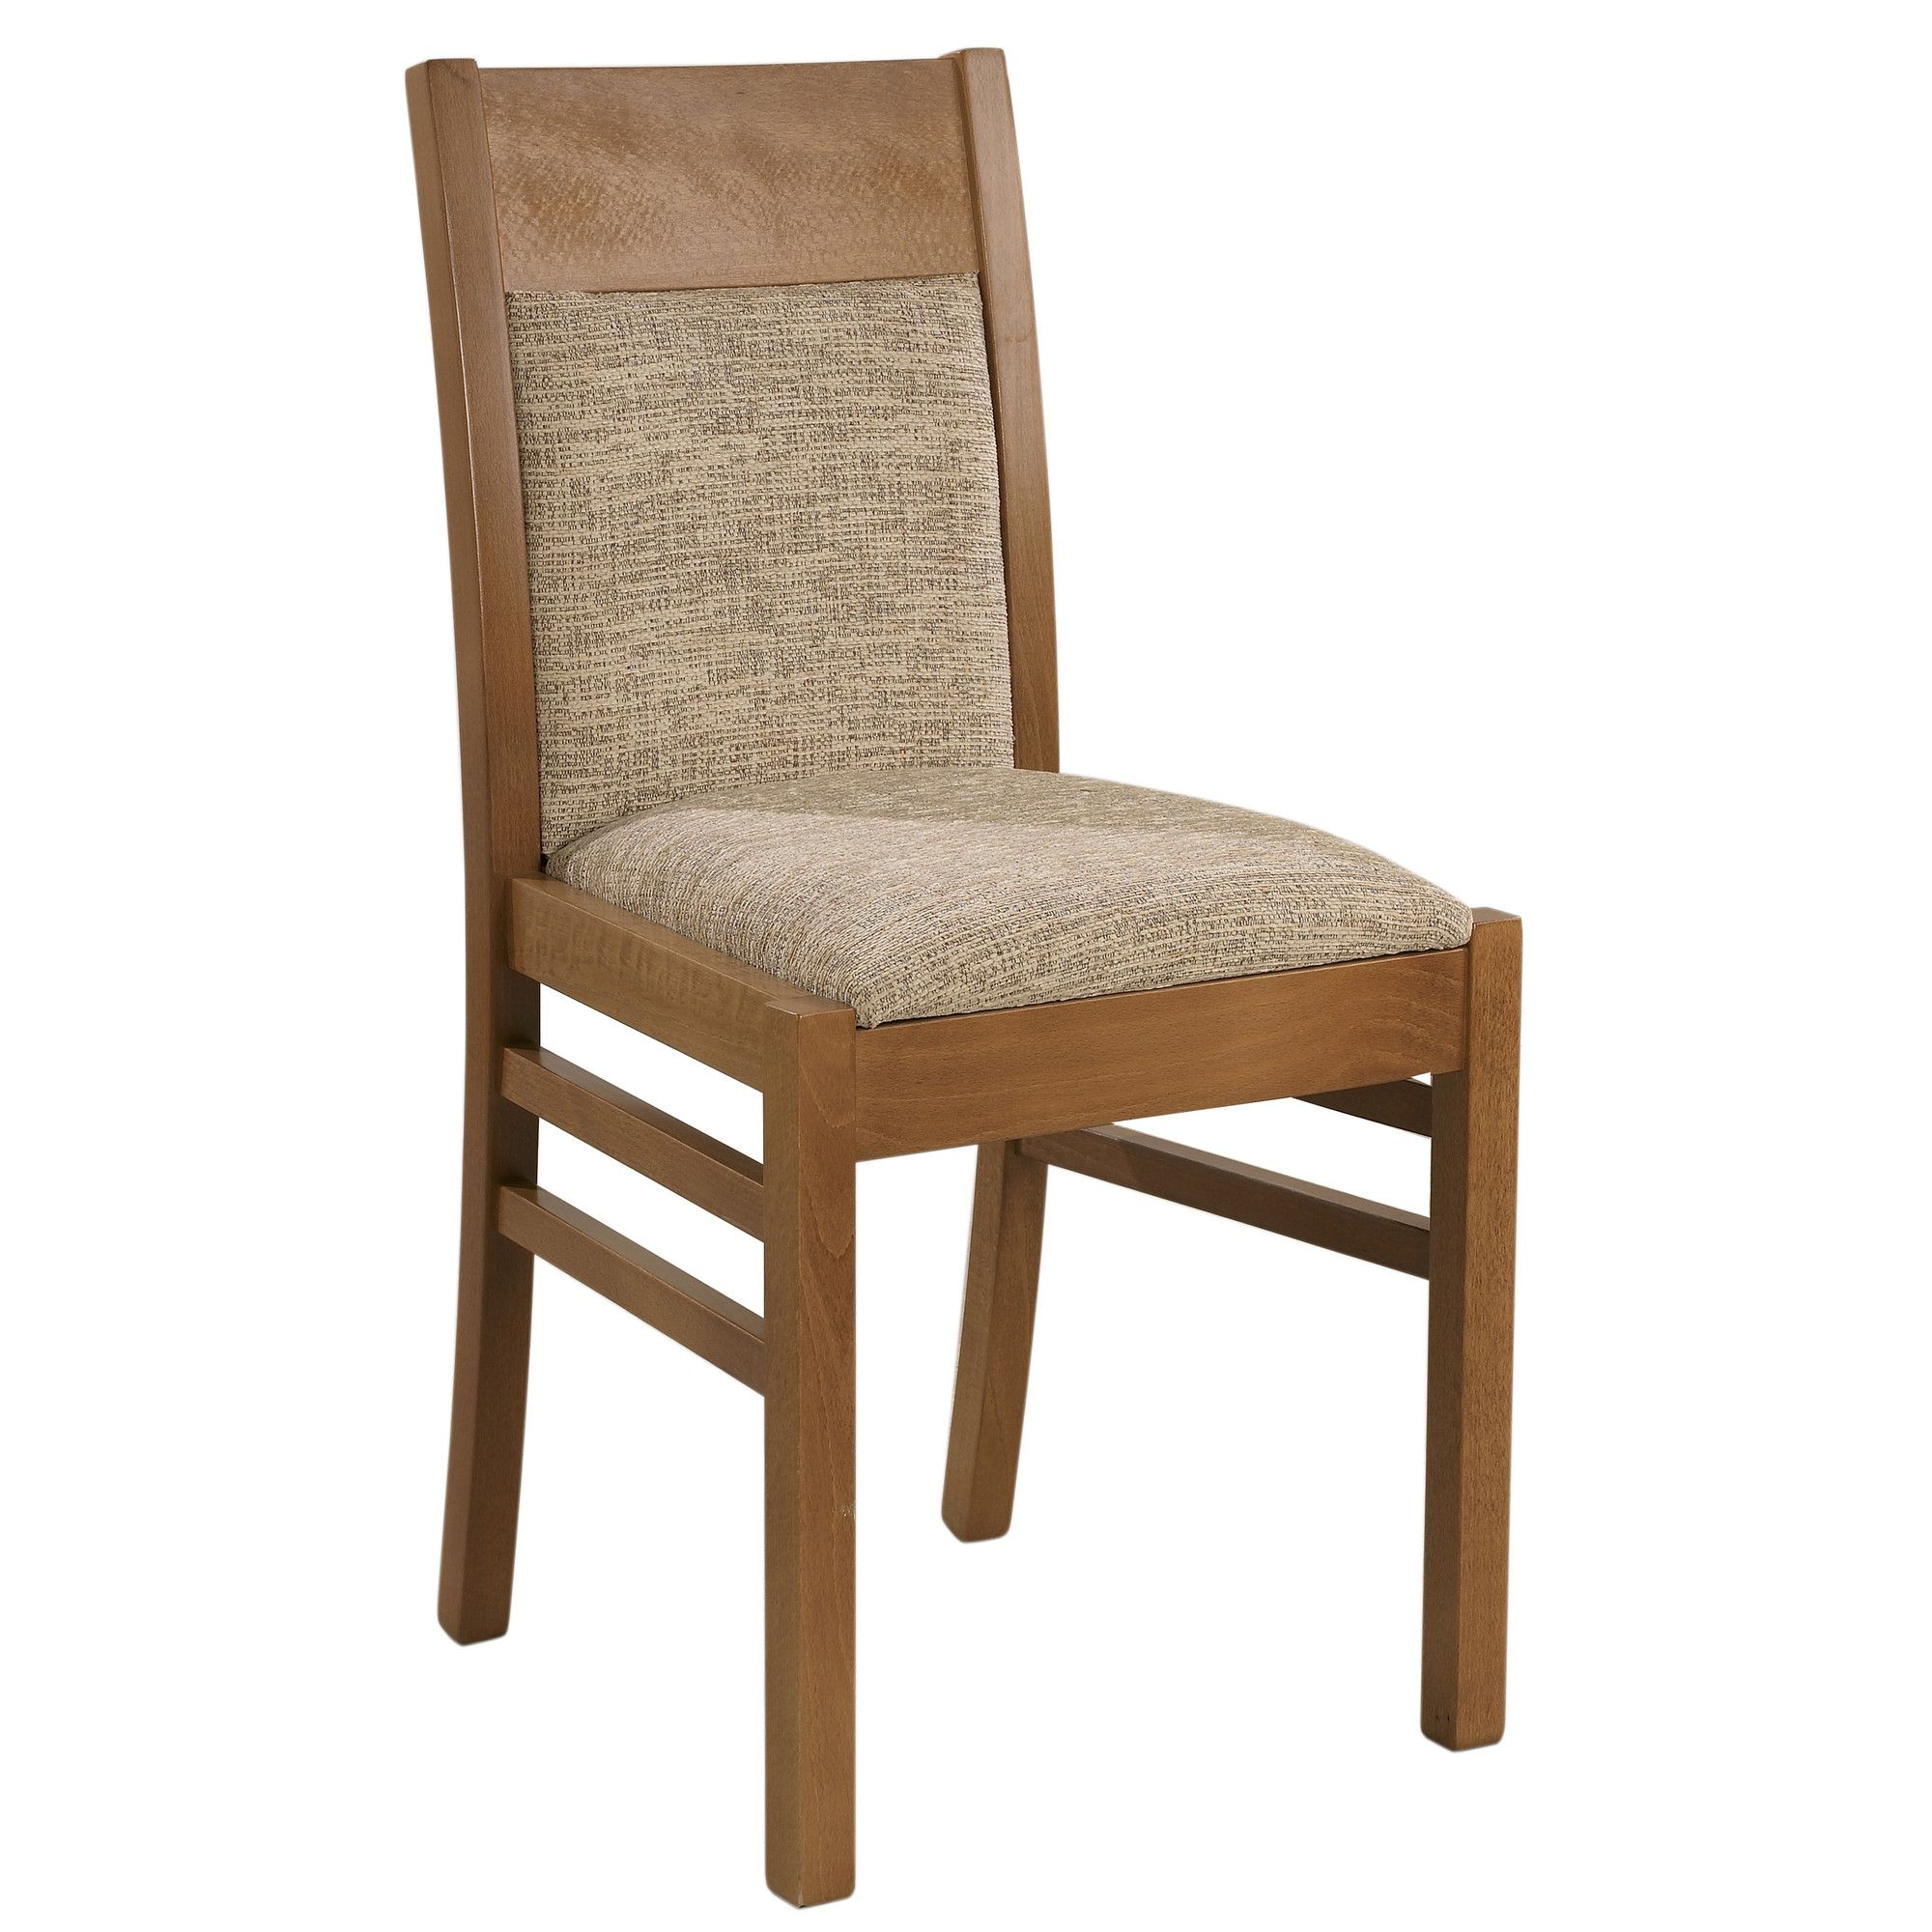 Sutcliffe Furniture Casual Dining Arley Upholstered Dining Chair (Set of 2) - Beige - English Oak